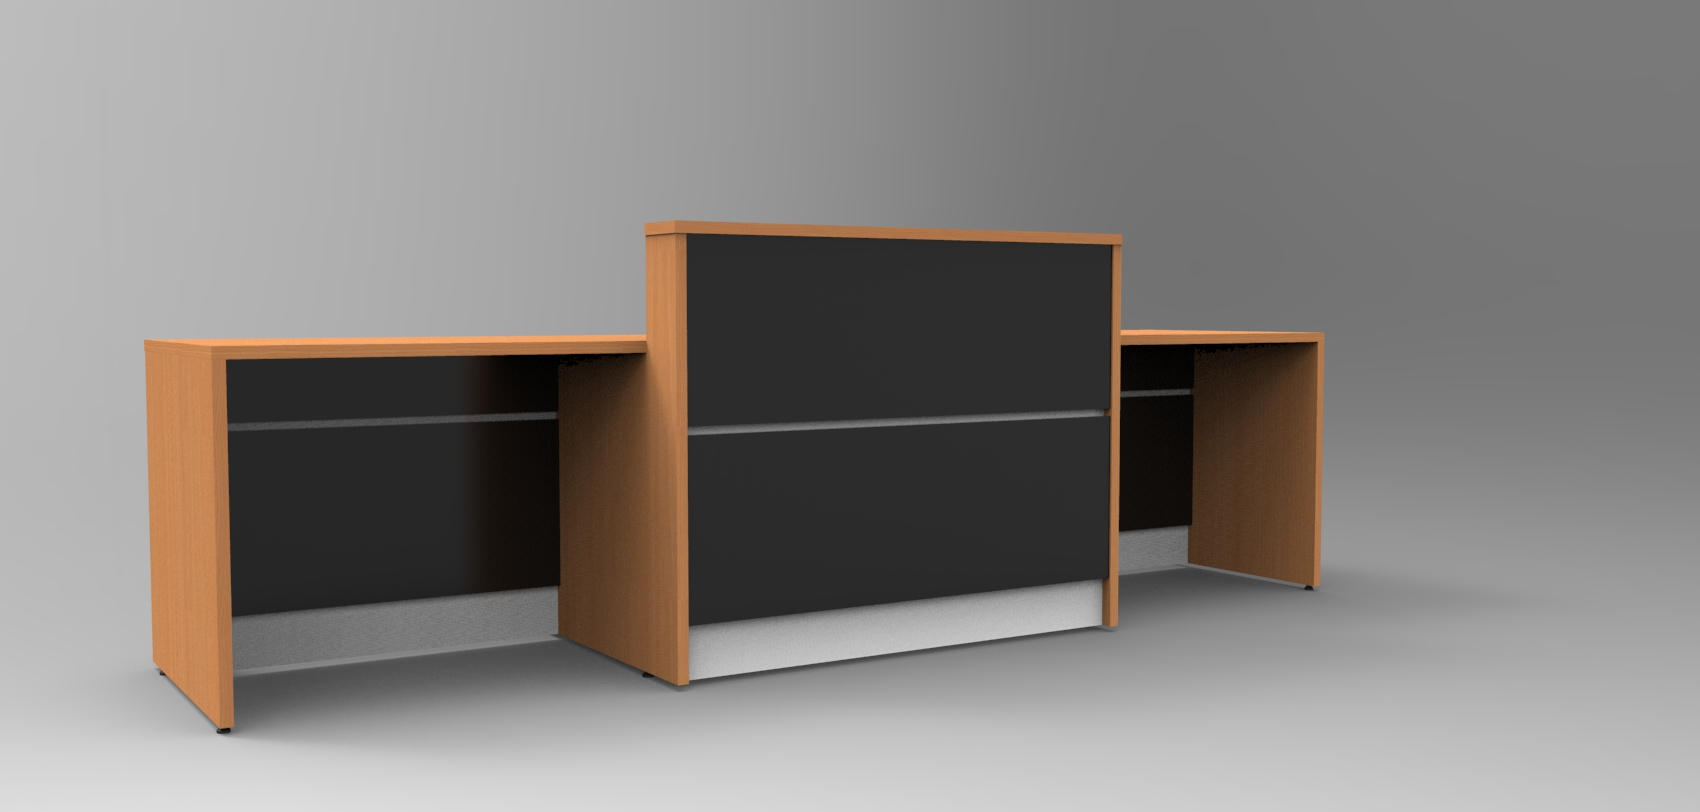 Image 12UA - DDA - Union reception desk finished in Beech and Black